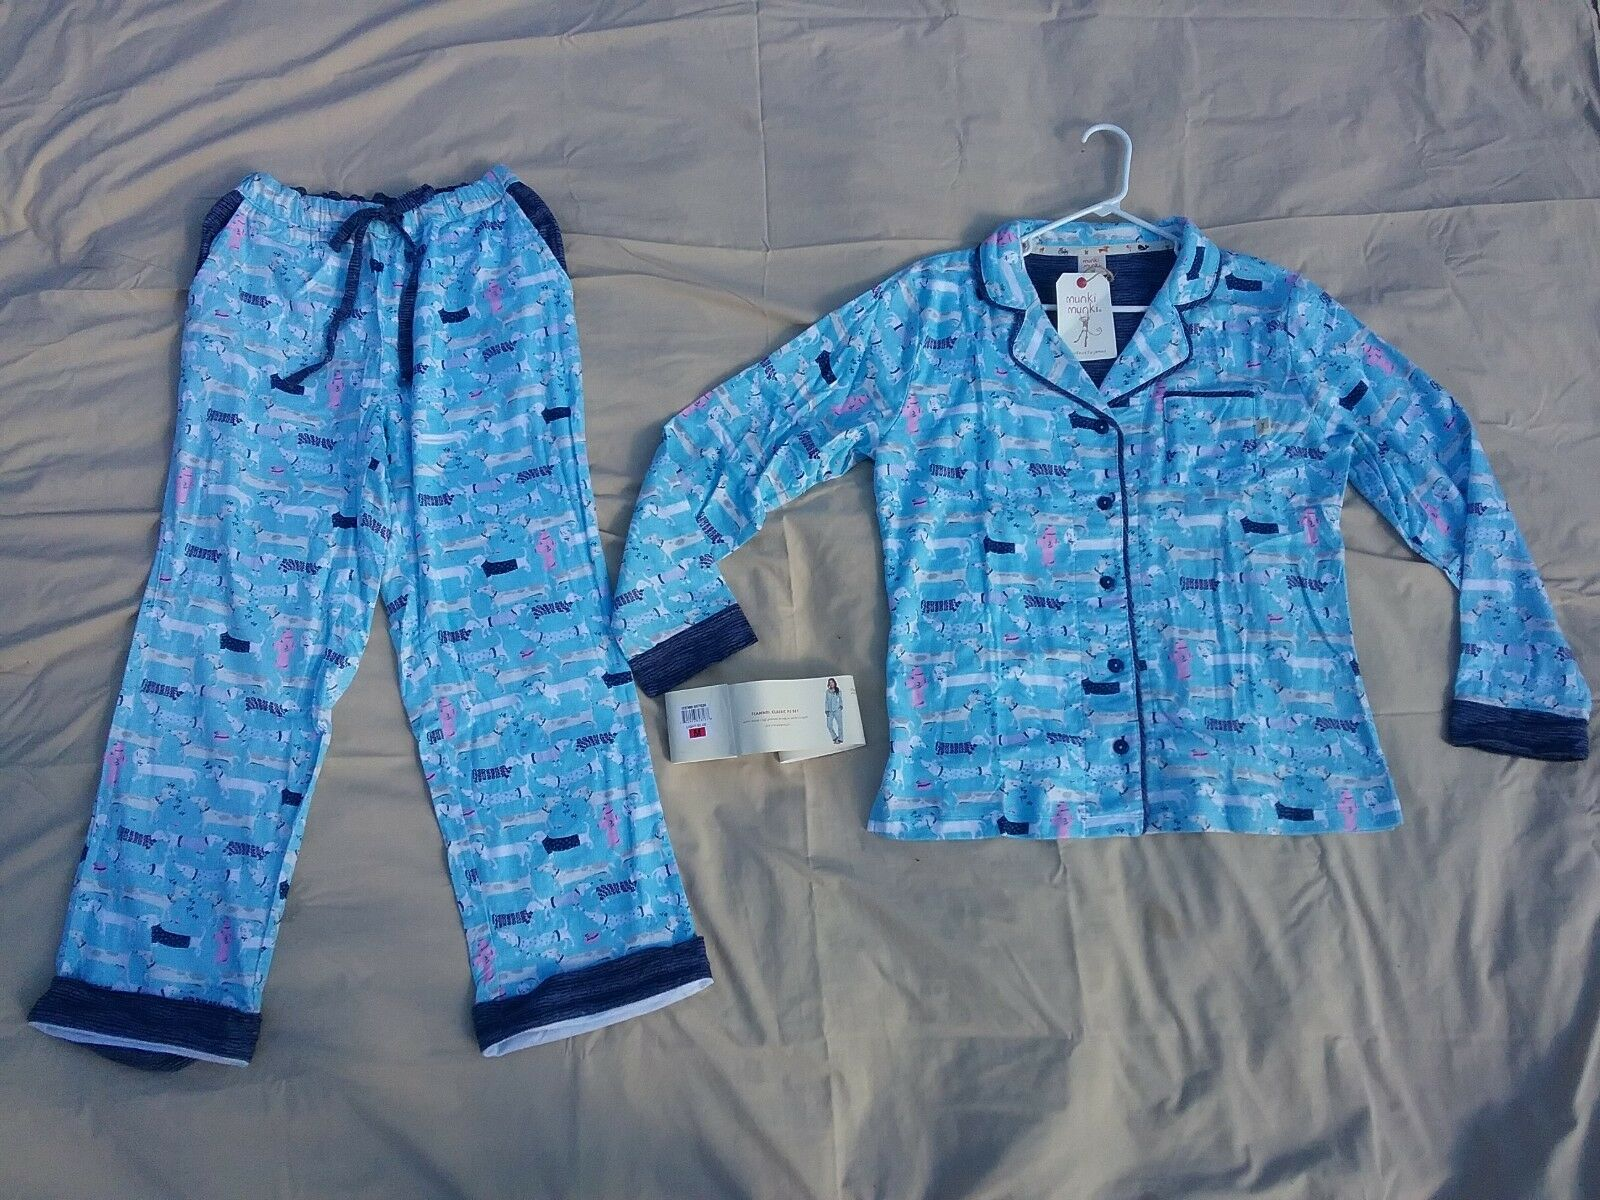 Women's Flannel pajama set 2 piece Button up Top Pants bluee Dogs  MANKI Large